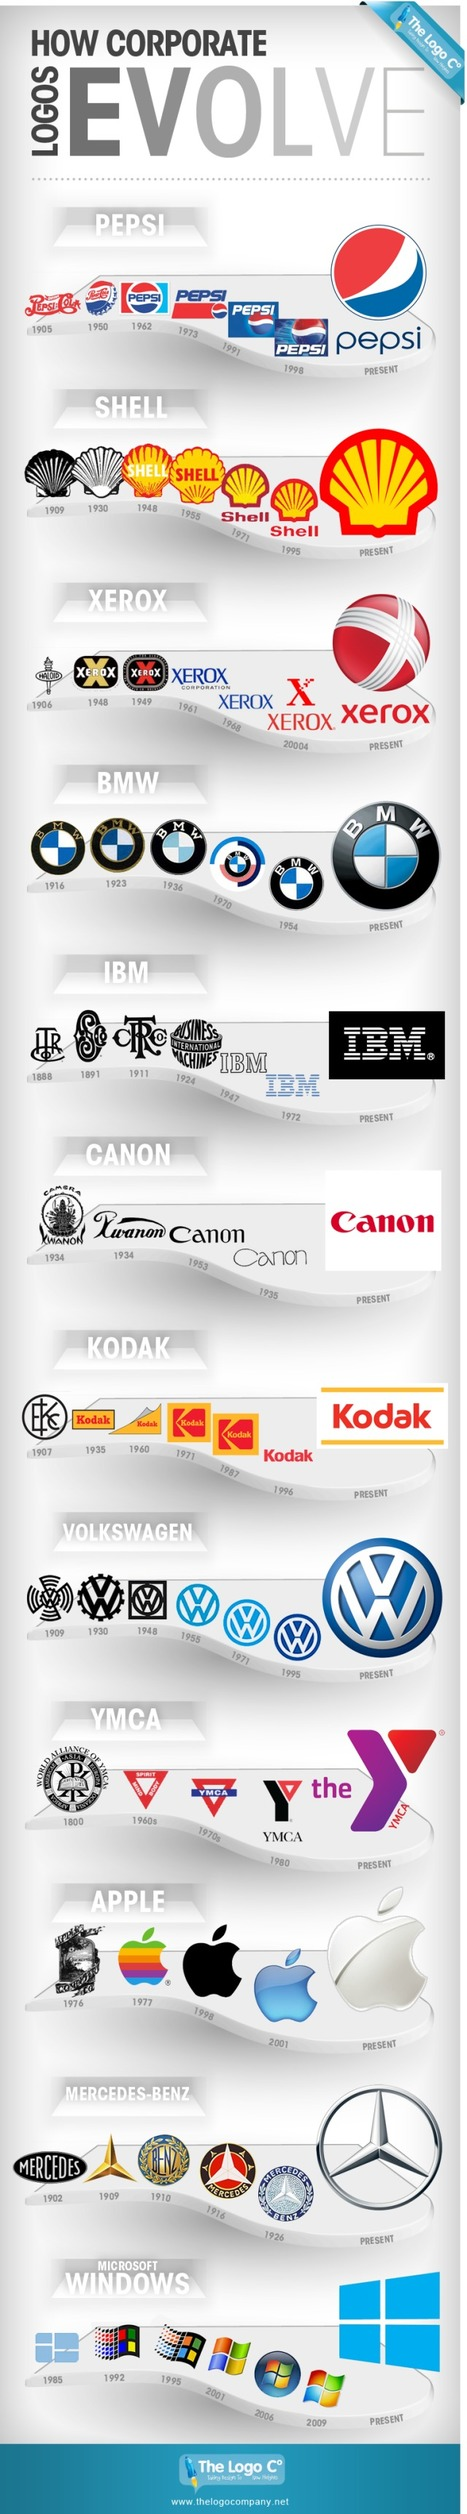 How Logos Change Over the Years [Infographic] | BestInfographics.co | The Best Infographics | Scoop.it